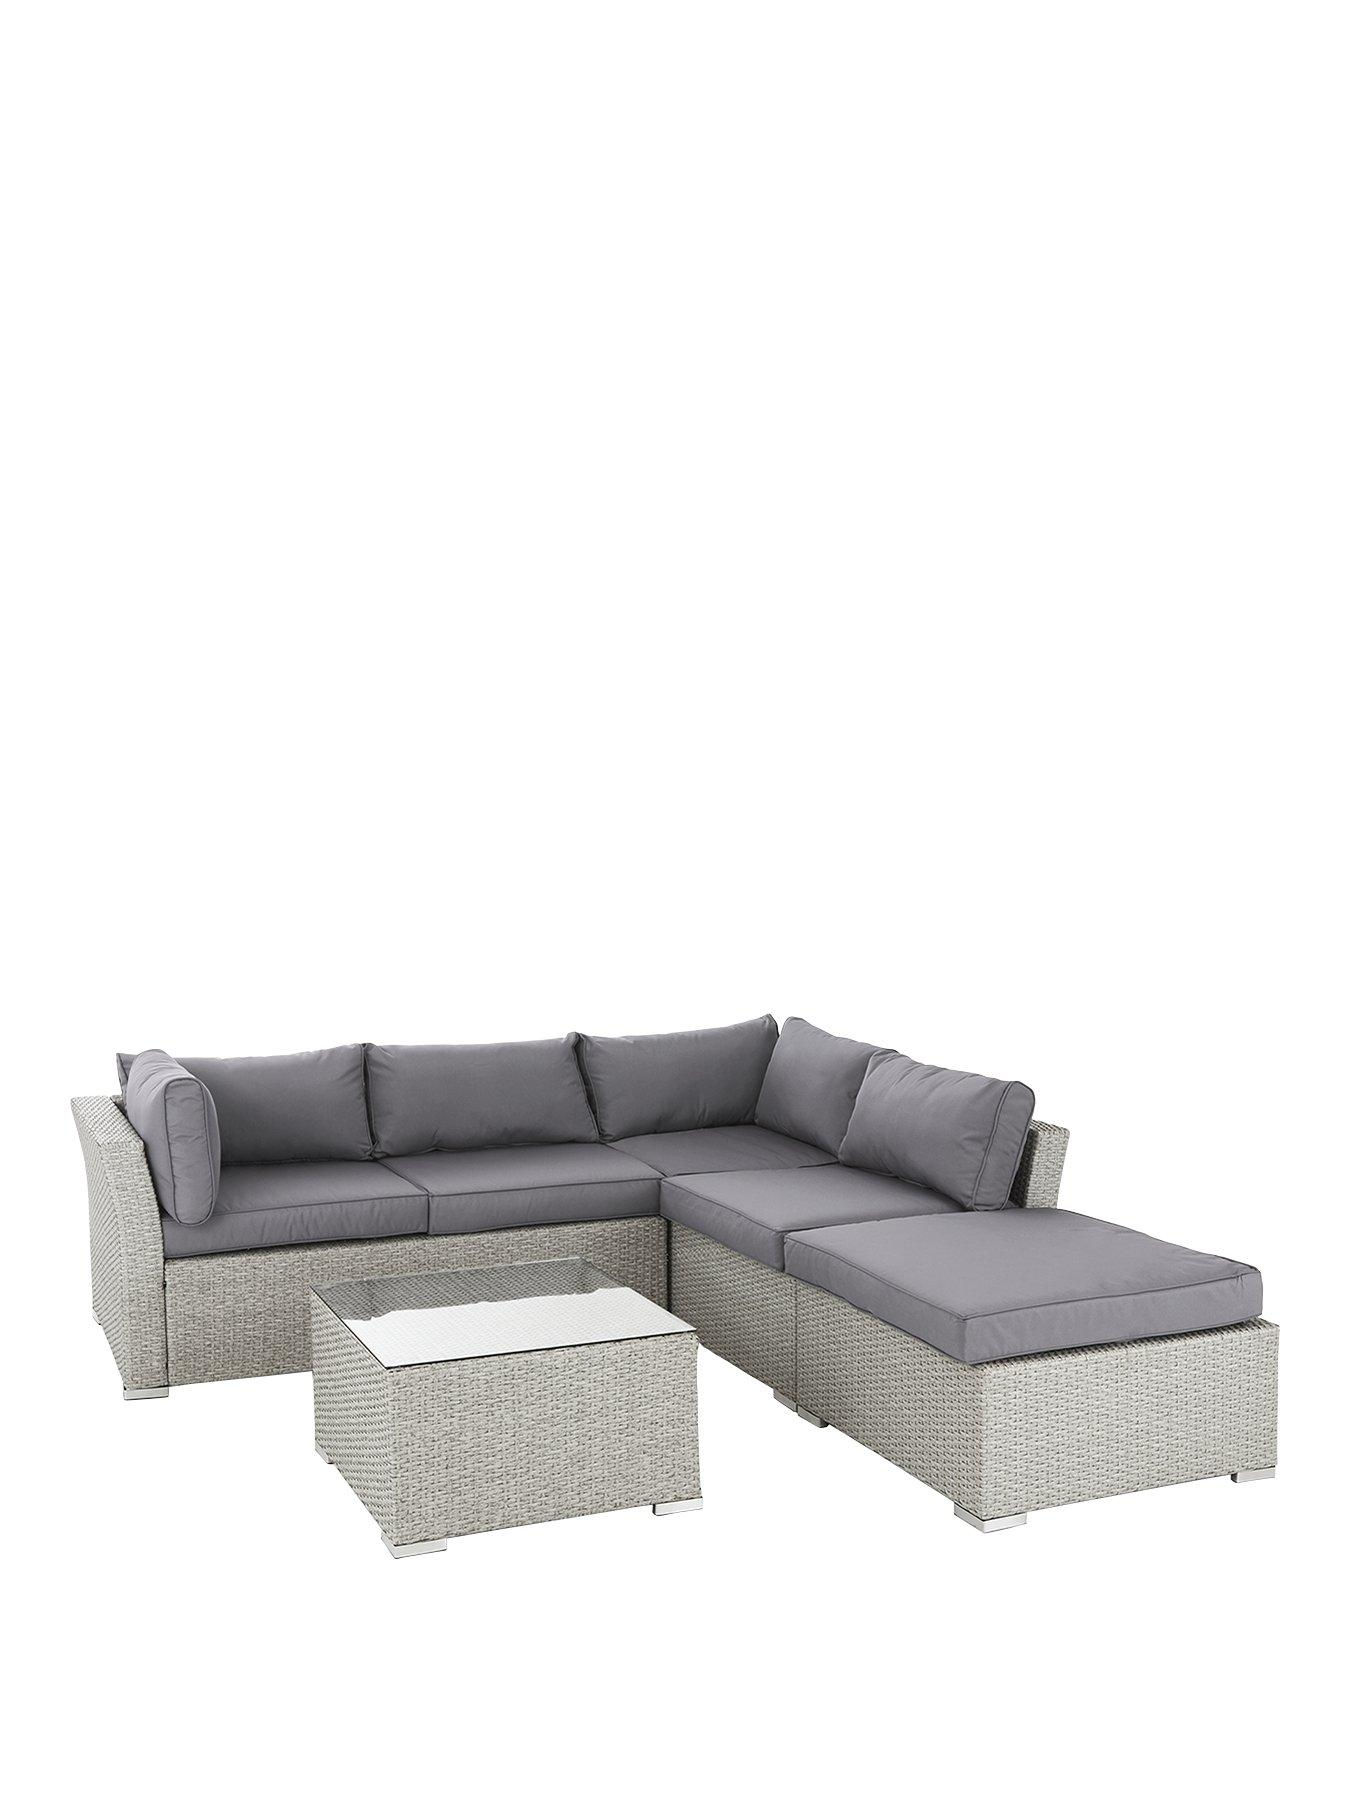 athens 4 piece corner set with table and chaise